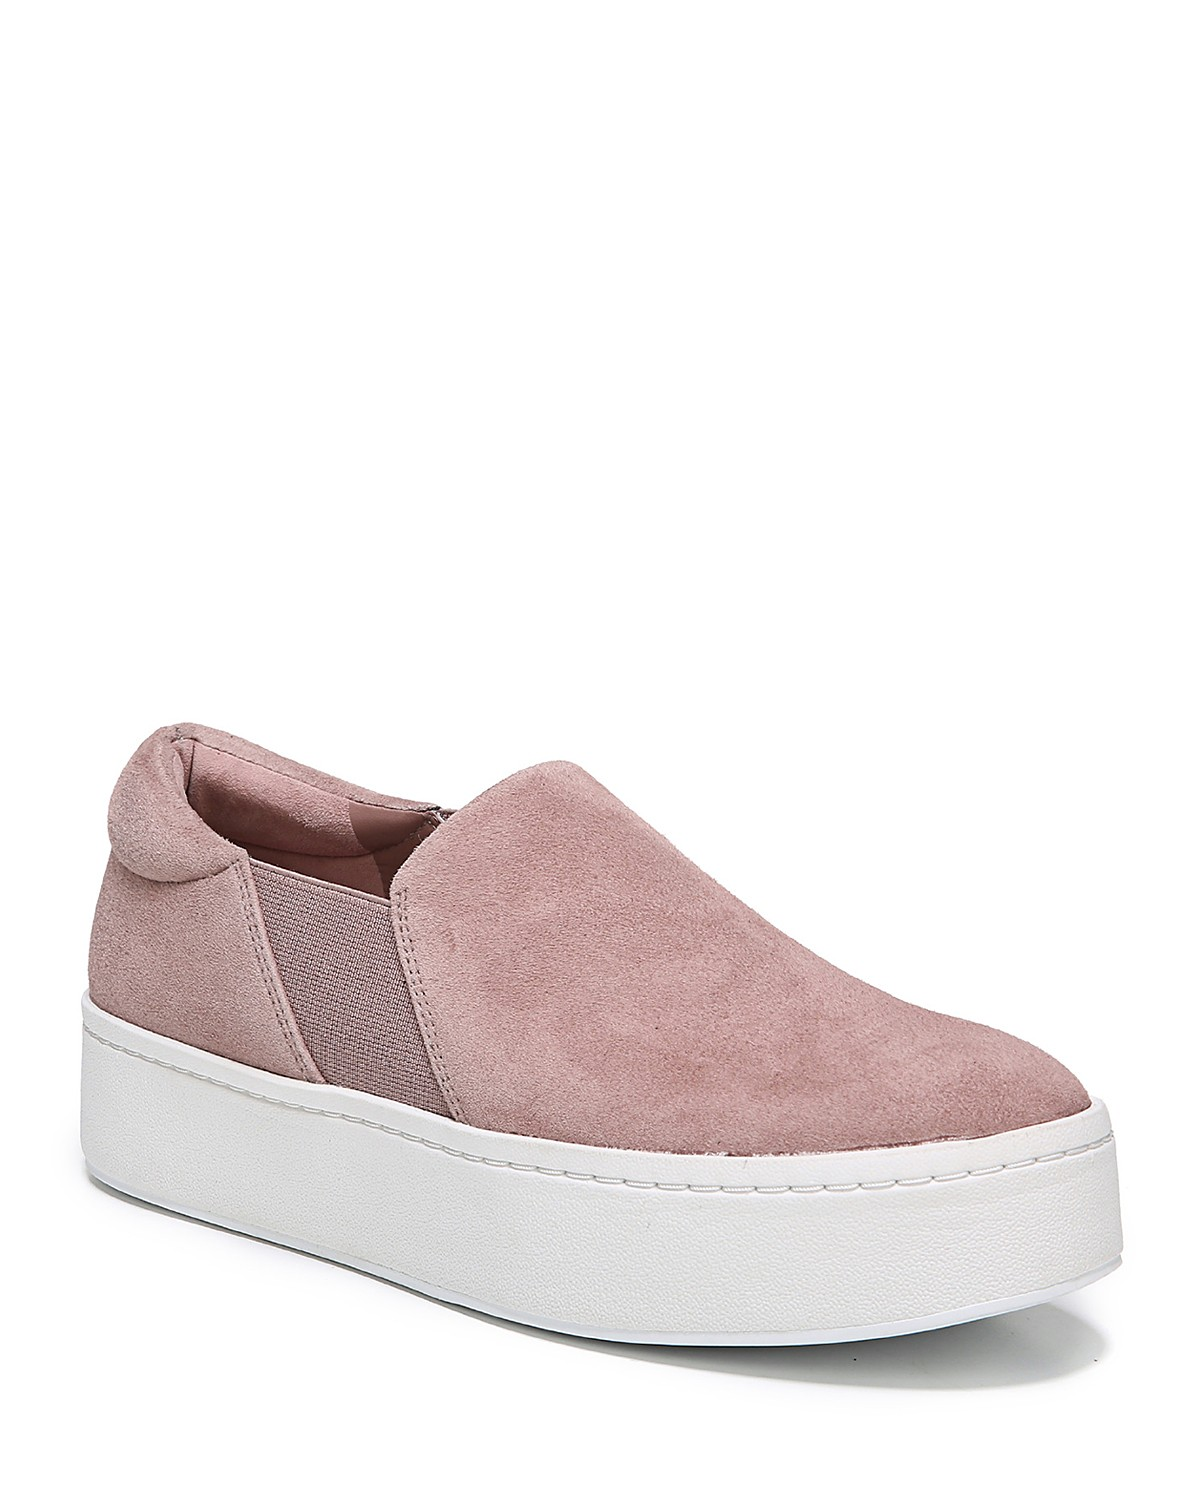 Vince Flatform Slip-On Sneakers free shipping very cheap PlXo1TNbX